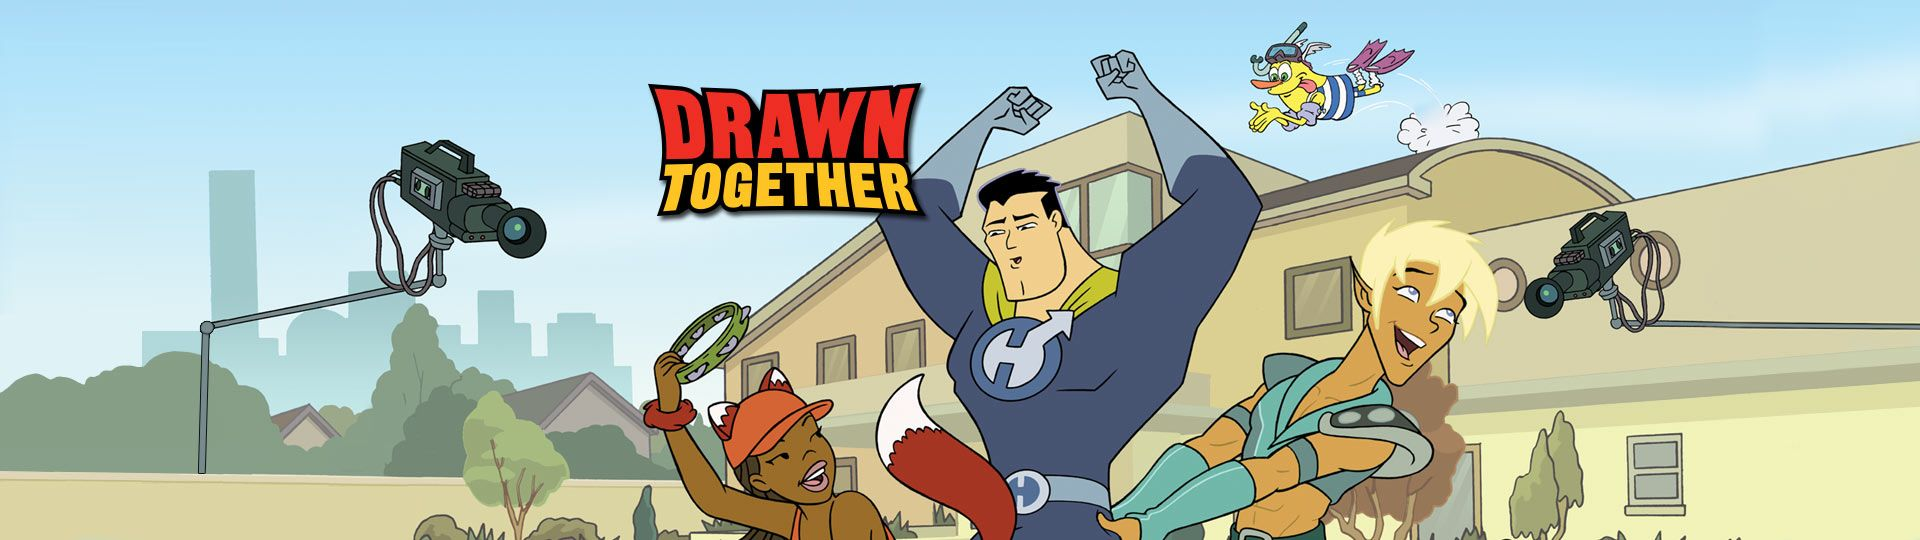 comedy central animated shows